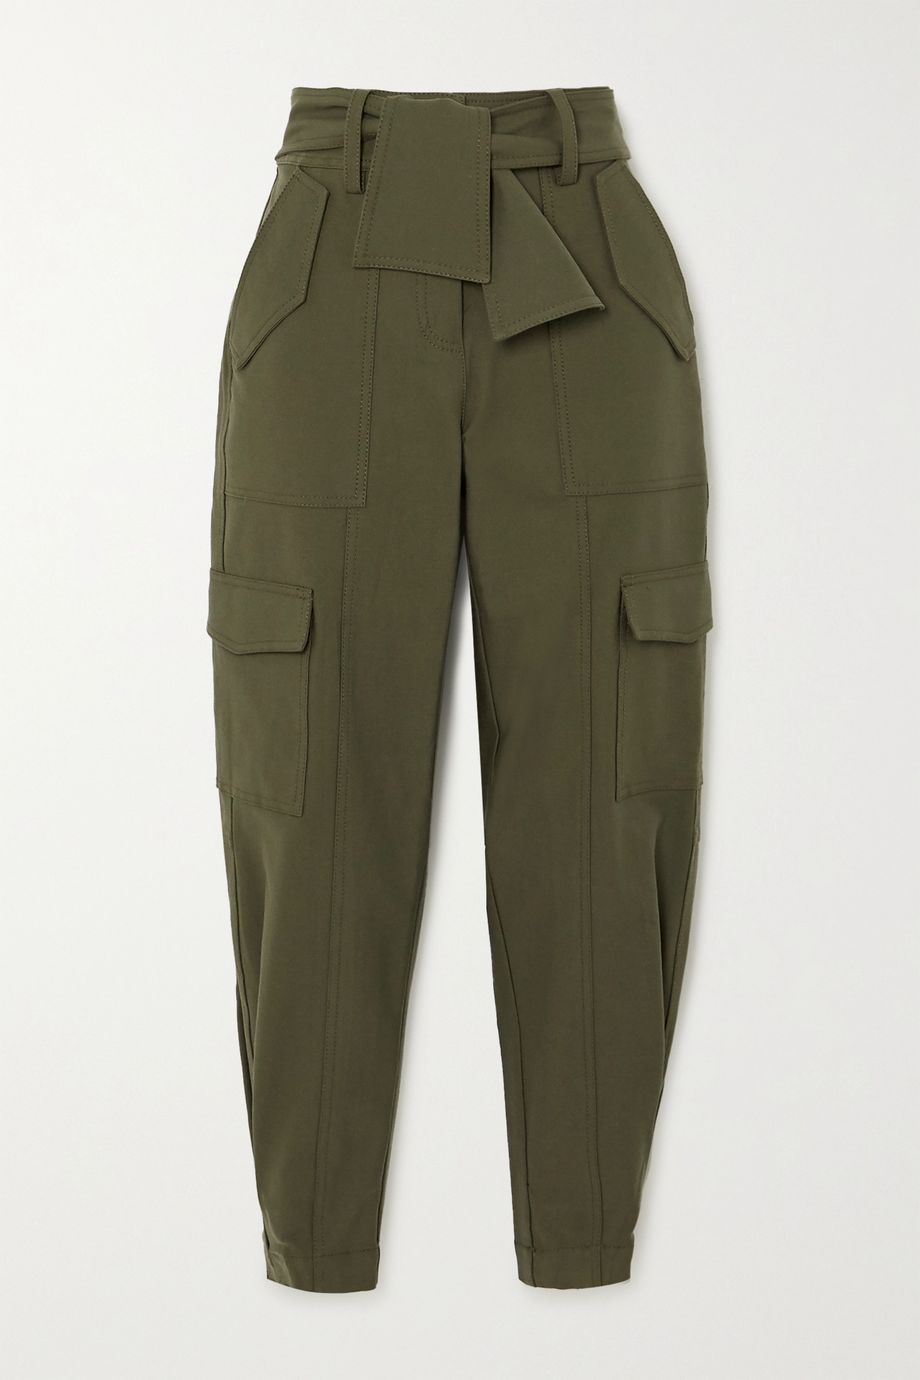 Derek Lam 10 Crosby Elian cropped belted cotton-blend twill tapered pants